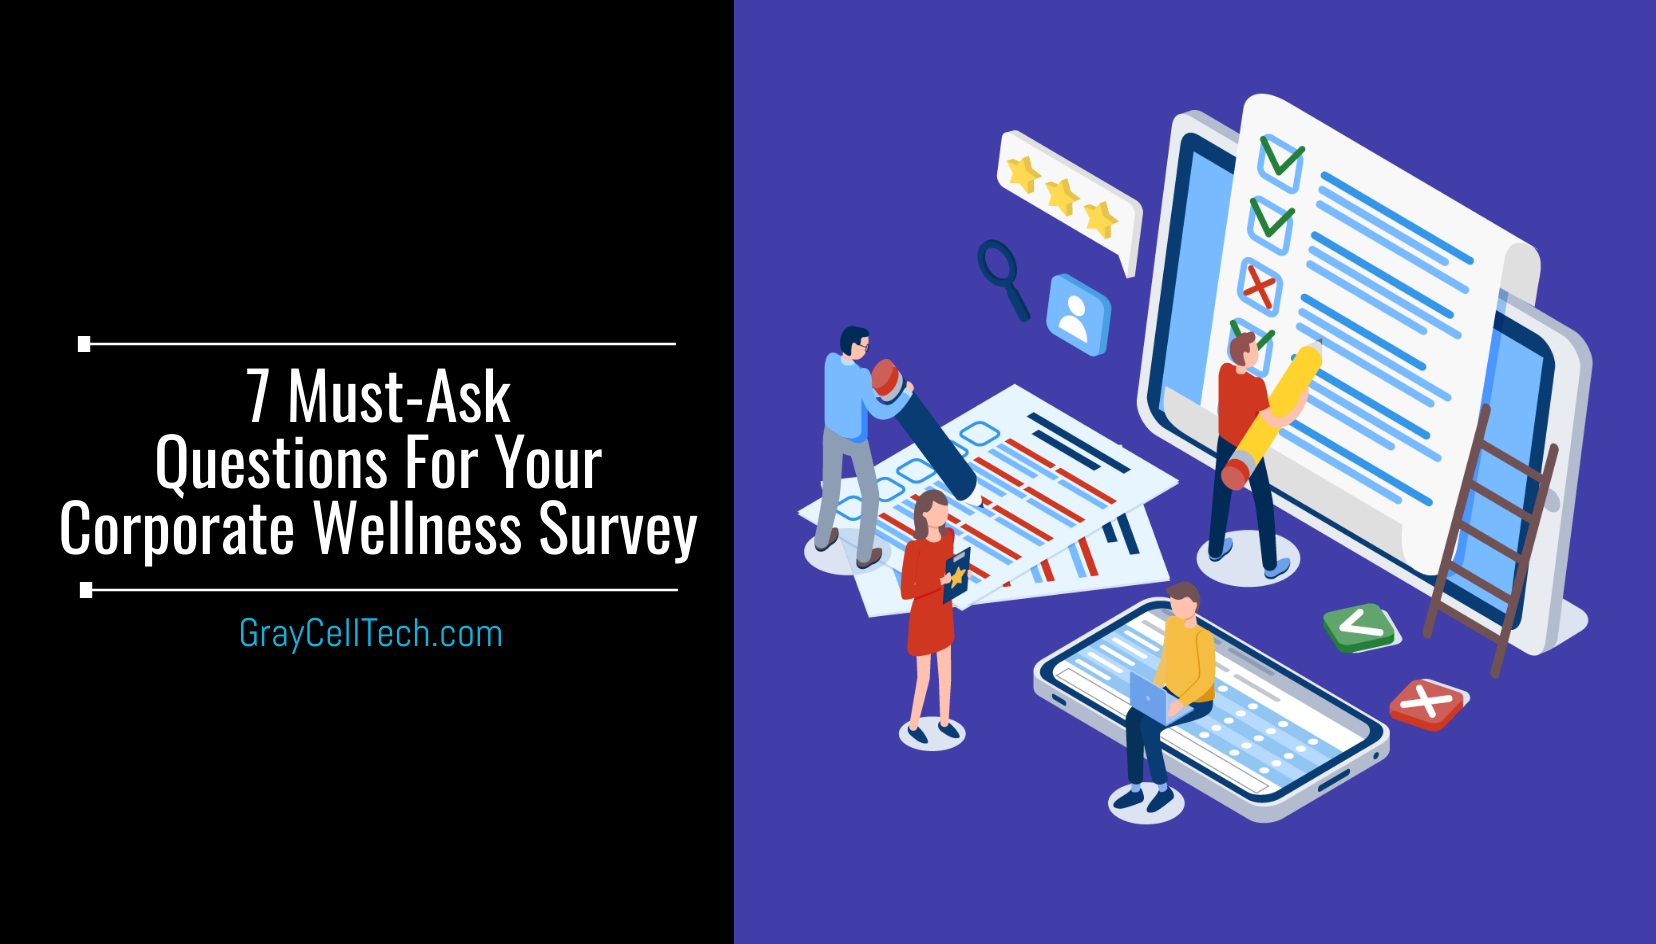 7 Must-Ask Questions for Your Corporate Wellness Survey